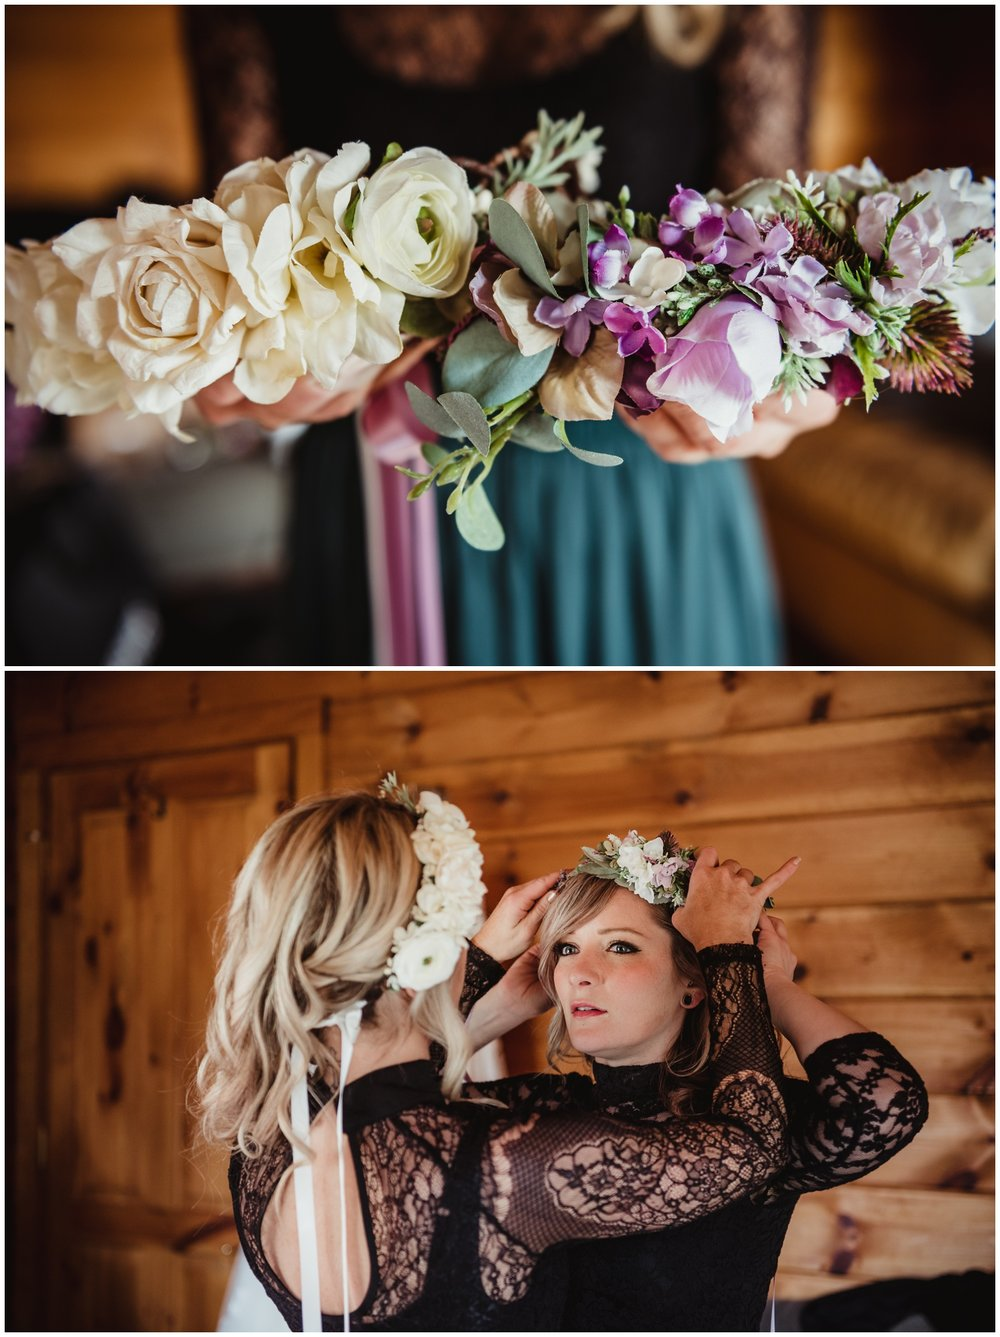 The bridesmaids getting ready before the wedding day by helping each other put on their floral crowns at the Barn at Valhalla in Chapel Hill, taken by Rose Trail Images.